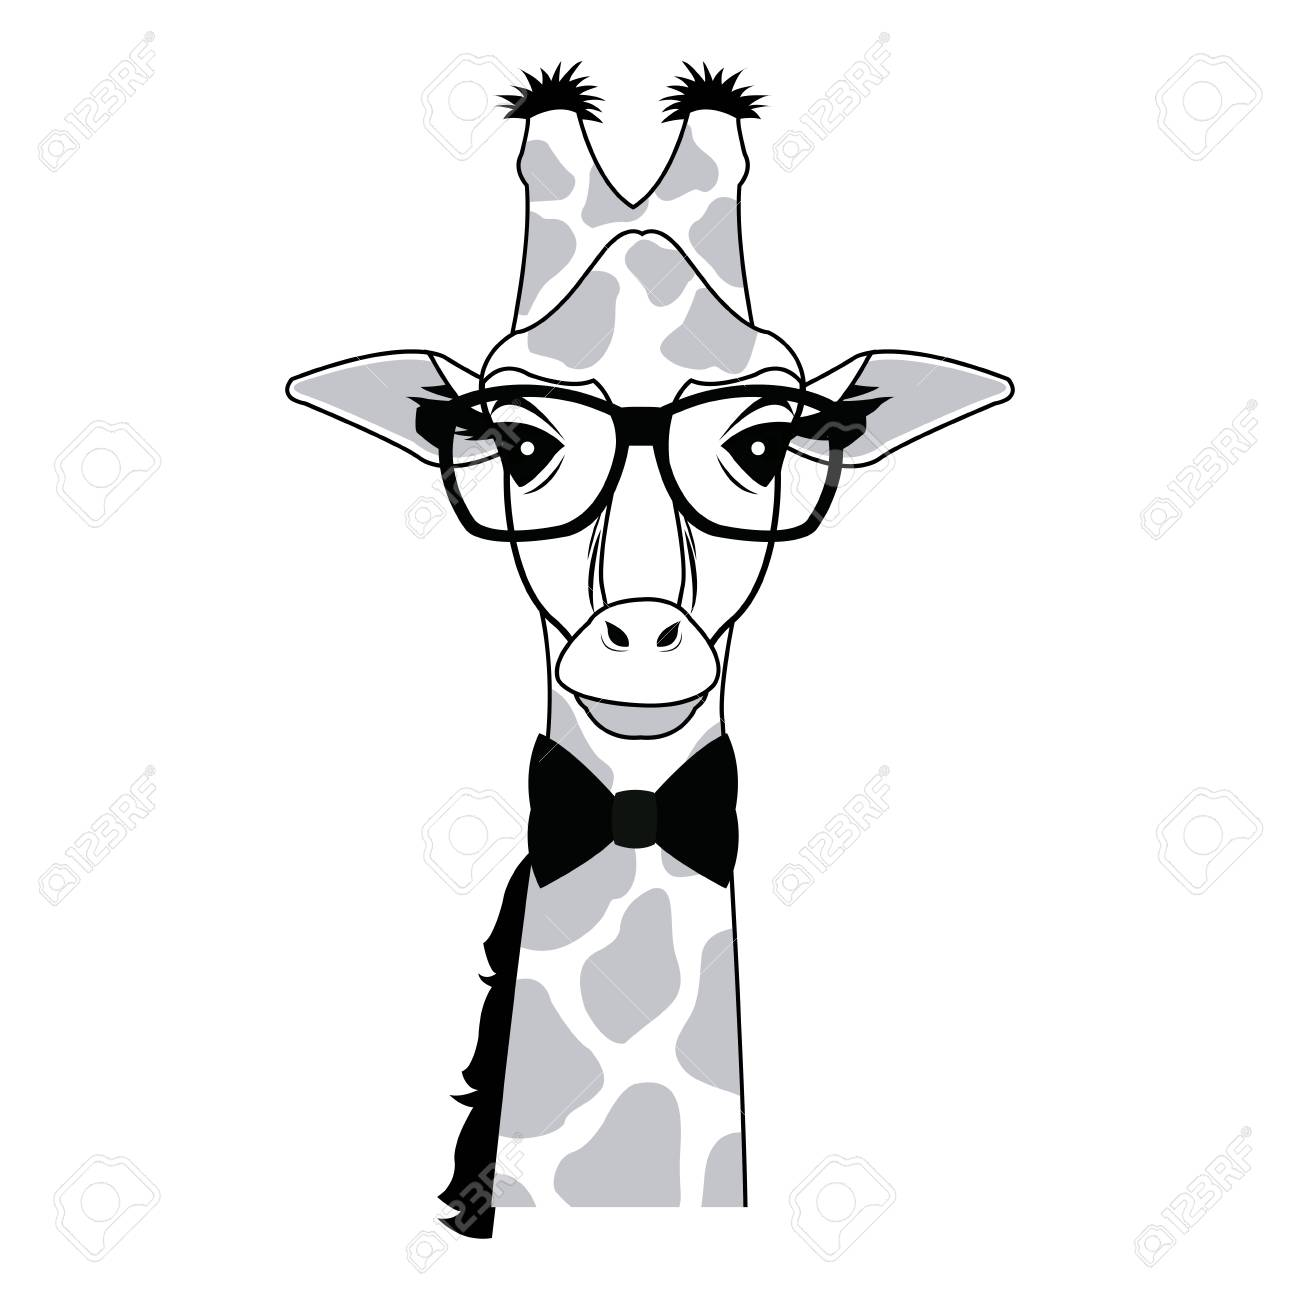 Giraffe Hipster Animal Wearing Glasses Fashion Vector Illustration Royalty Free Cliparts Vectors And Stock Illustration Image 78972520